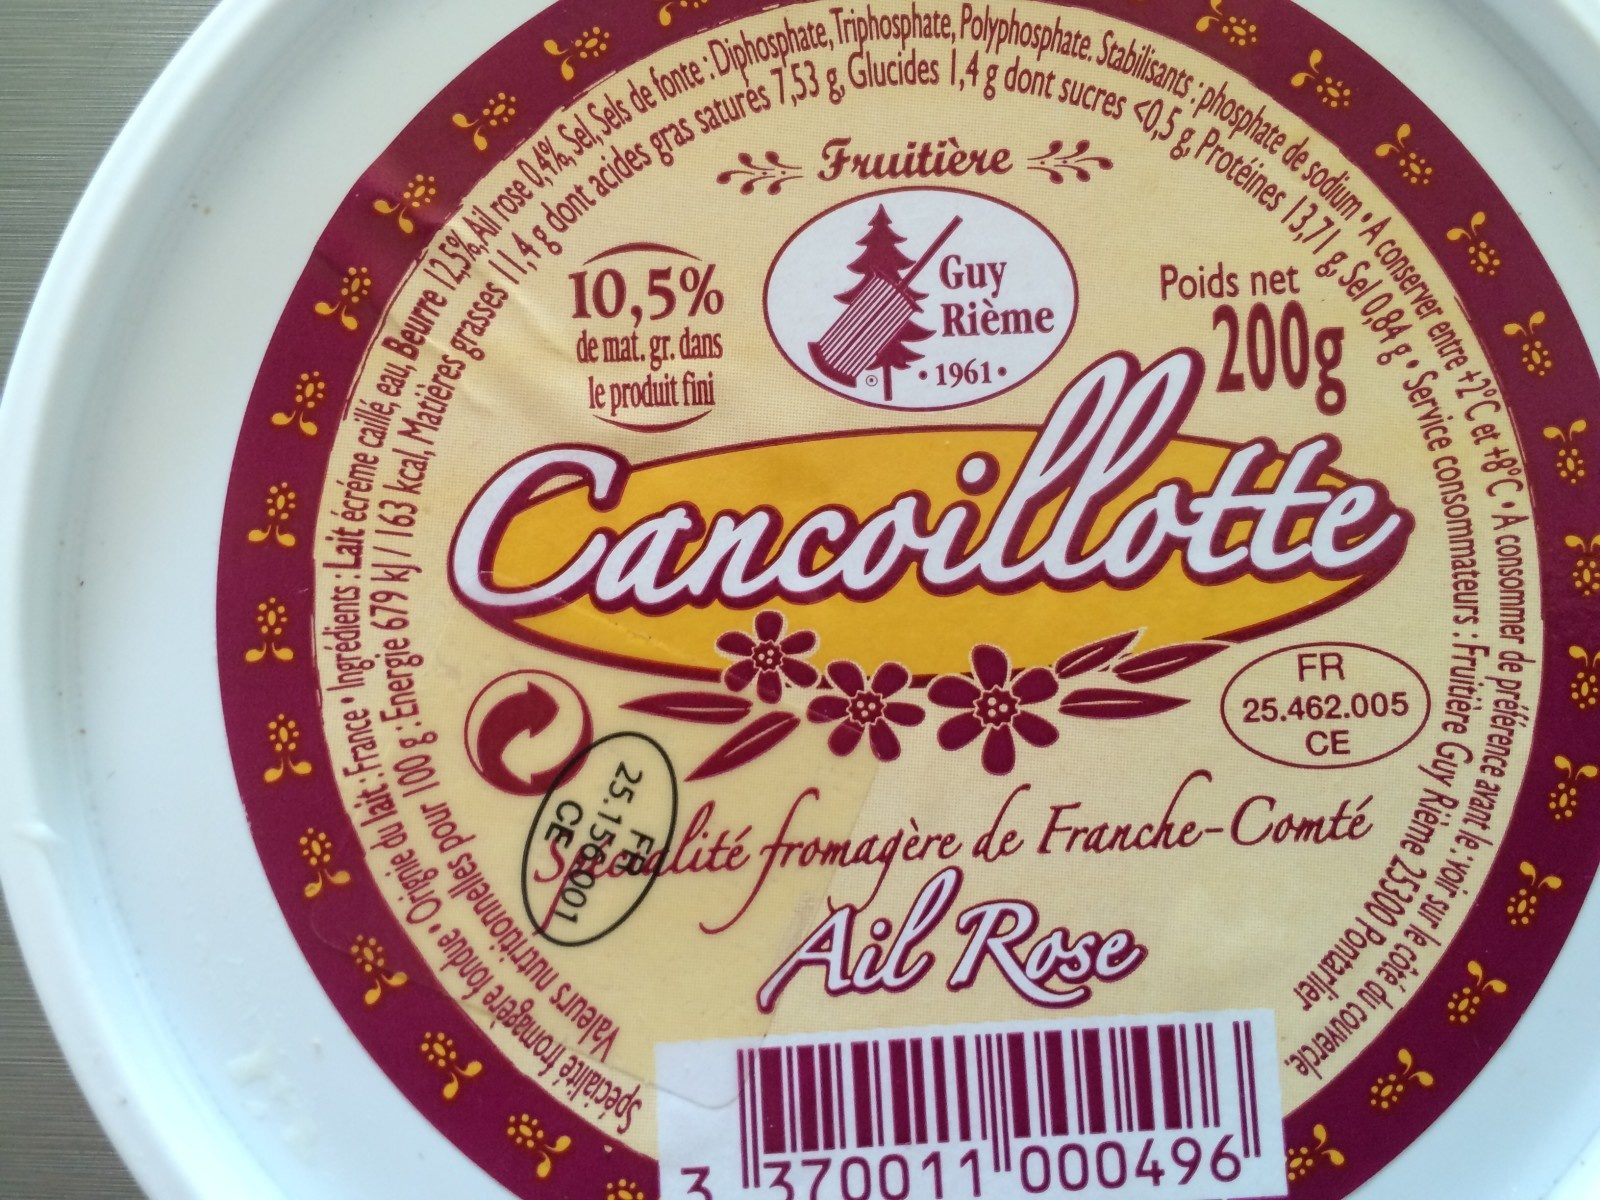 Cancoillotte ail rose - Ingredients - fr